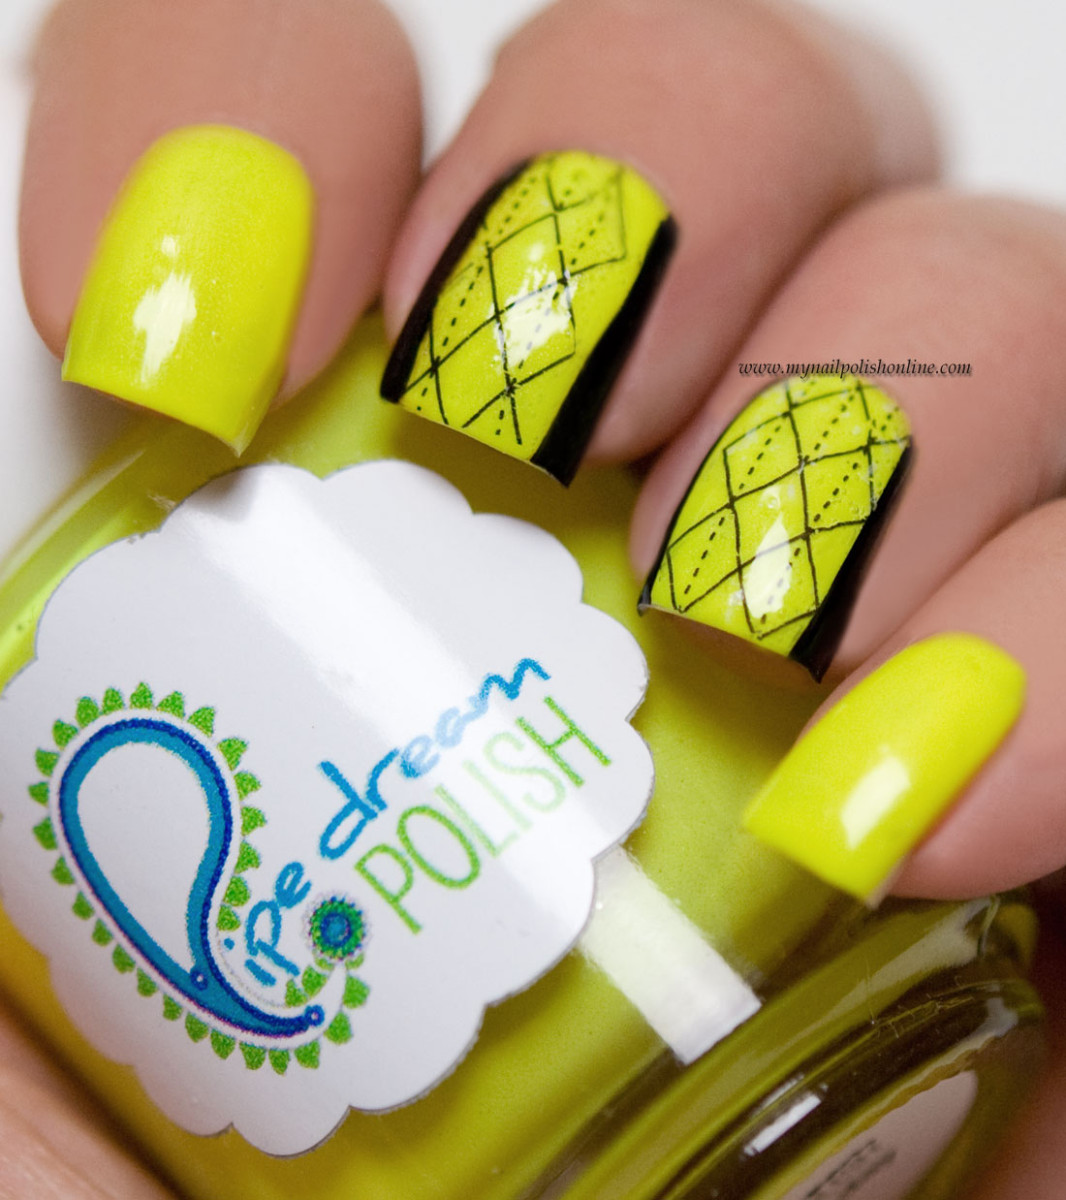 Yellow neon nail art with nail tattoos - My Nail Polish Online